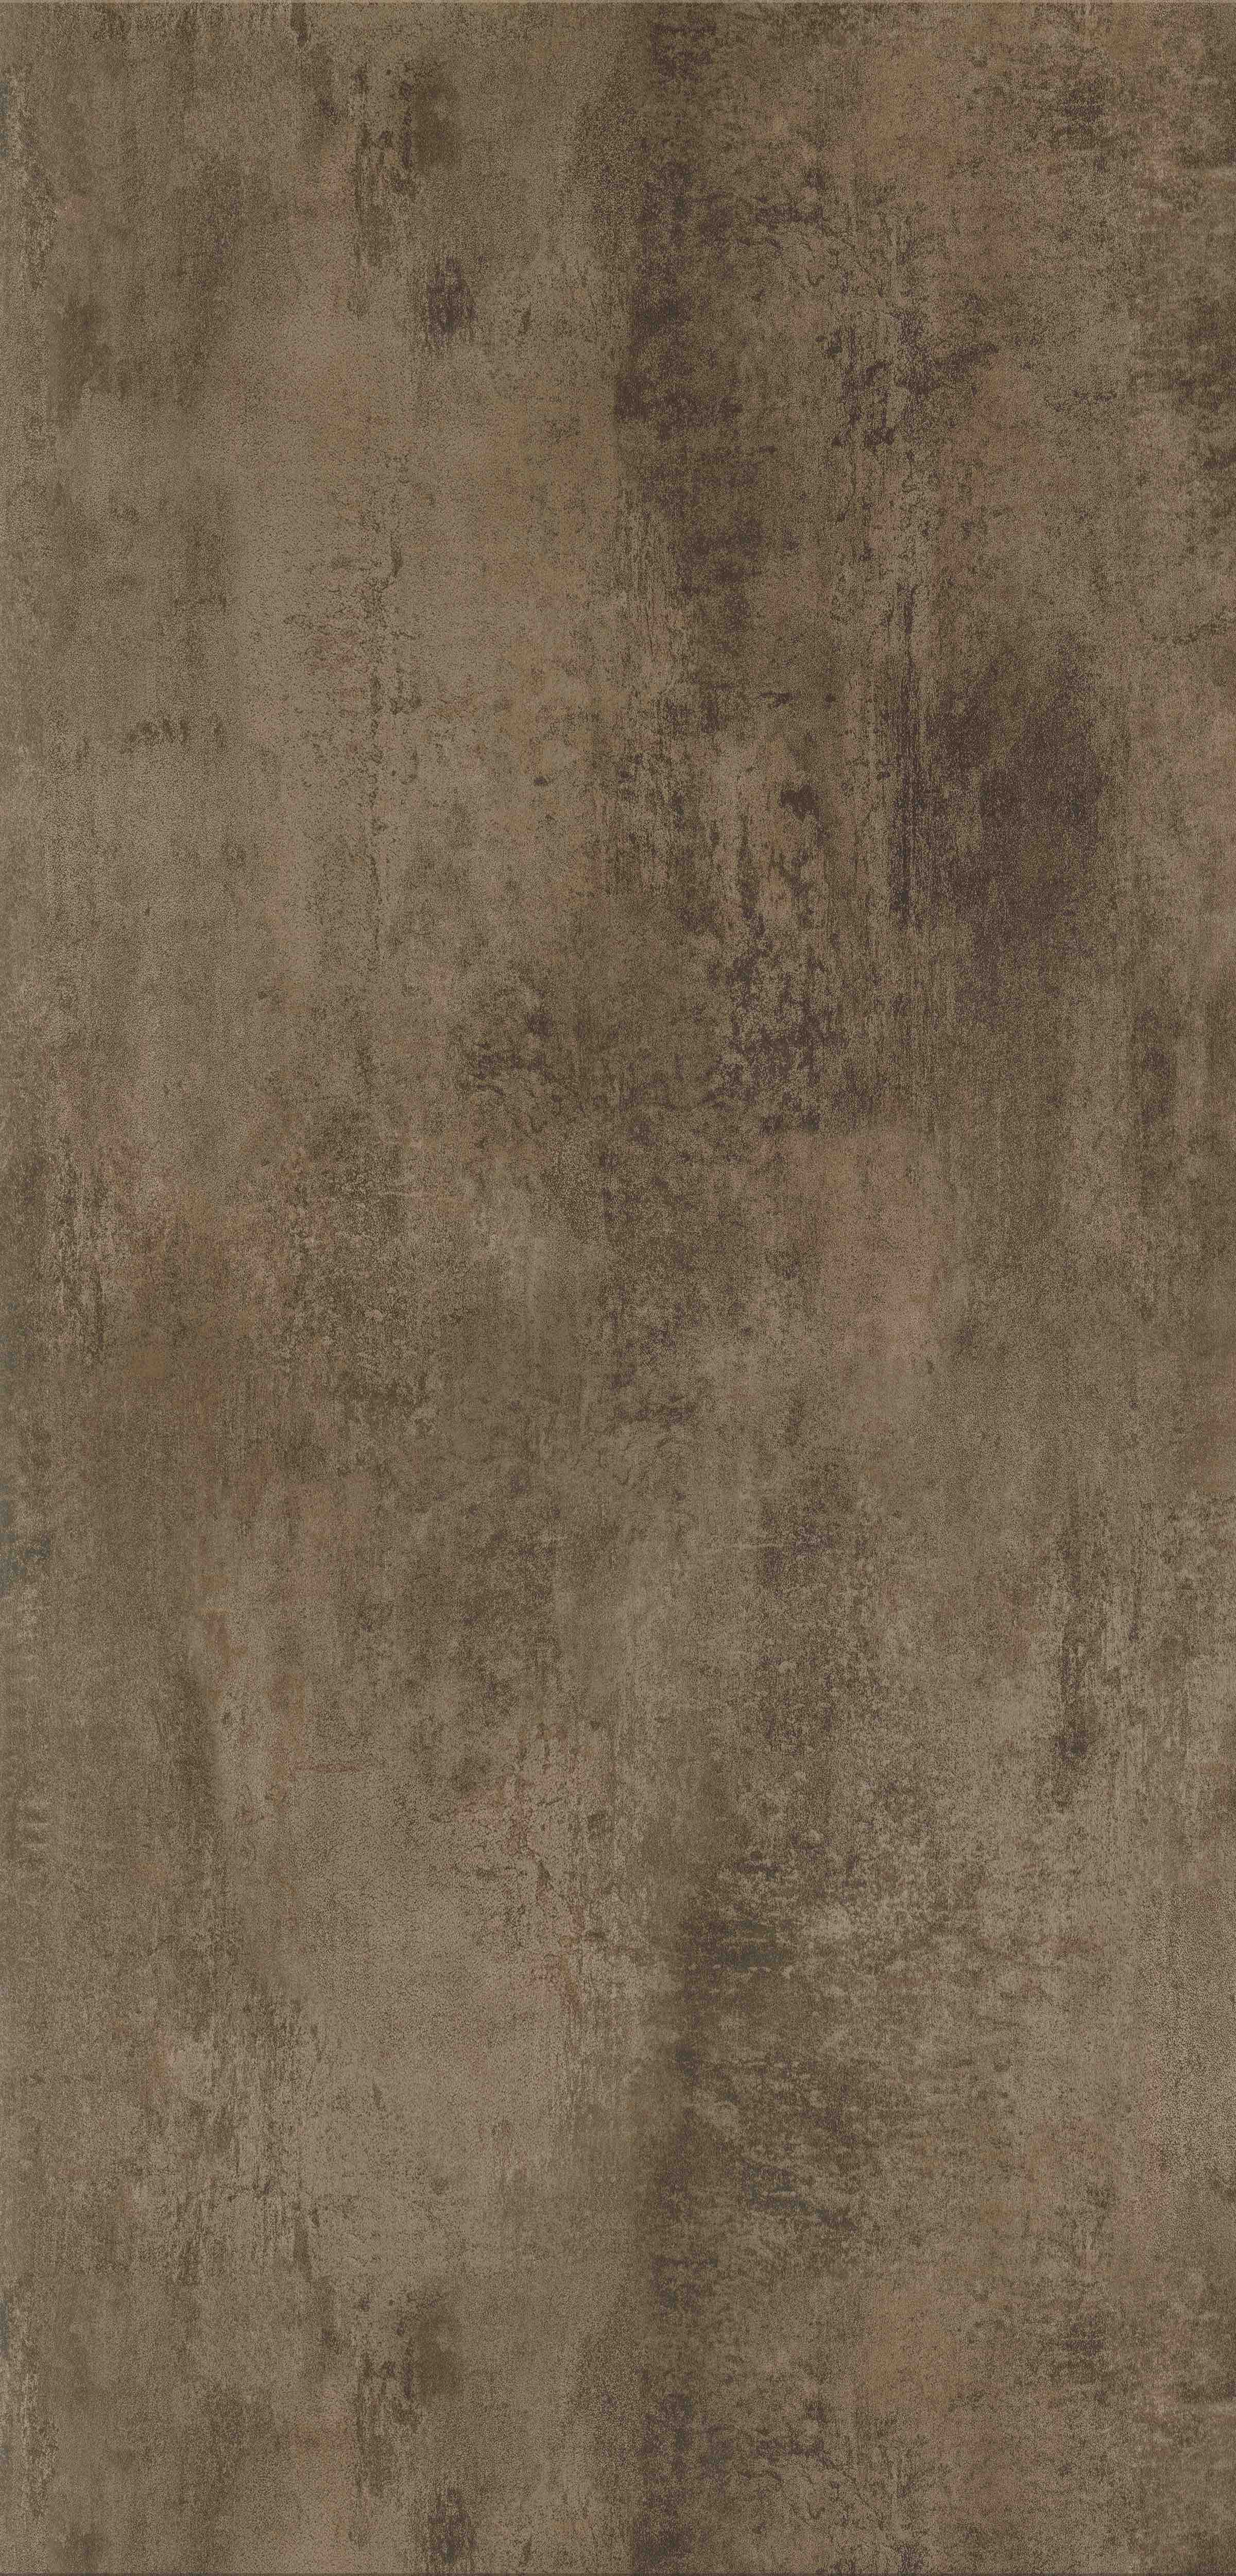 Rappórt | Copper Metalstone, 2970 | Paragon Carpet Tiles | Commercial Carpet Tiles